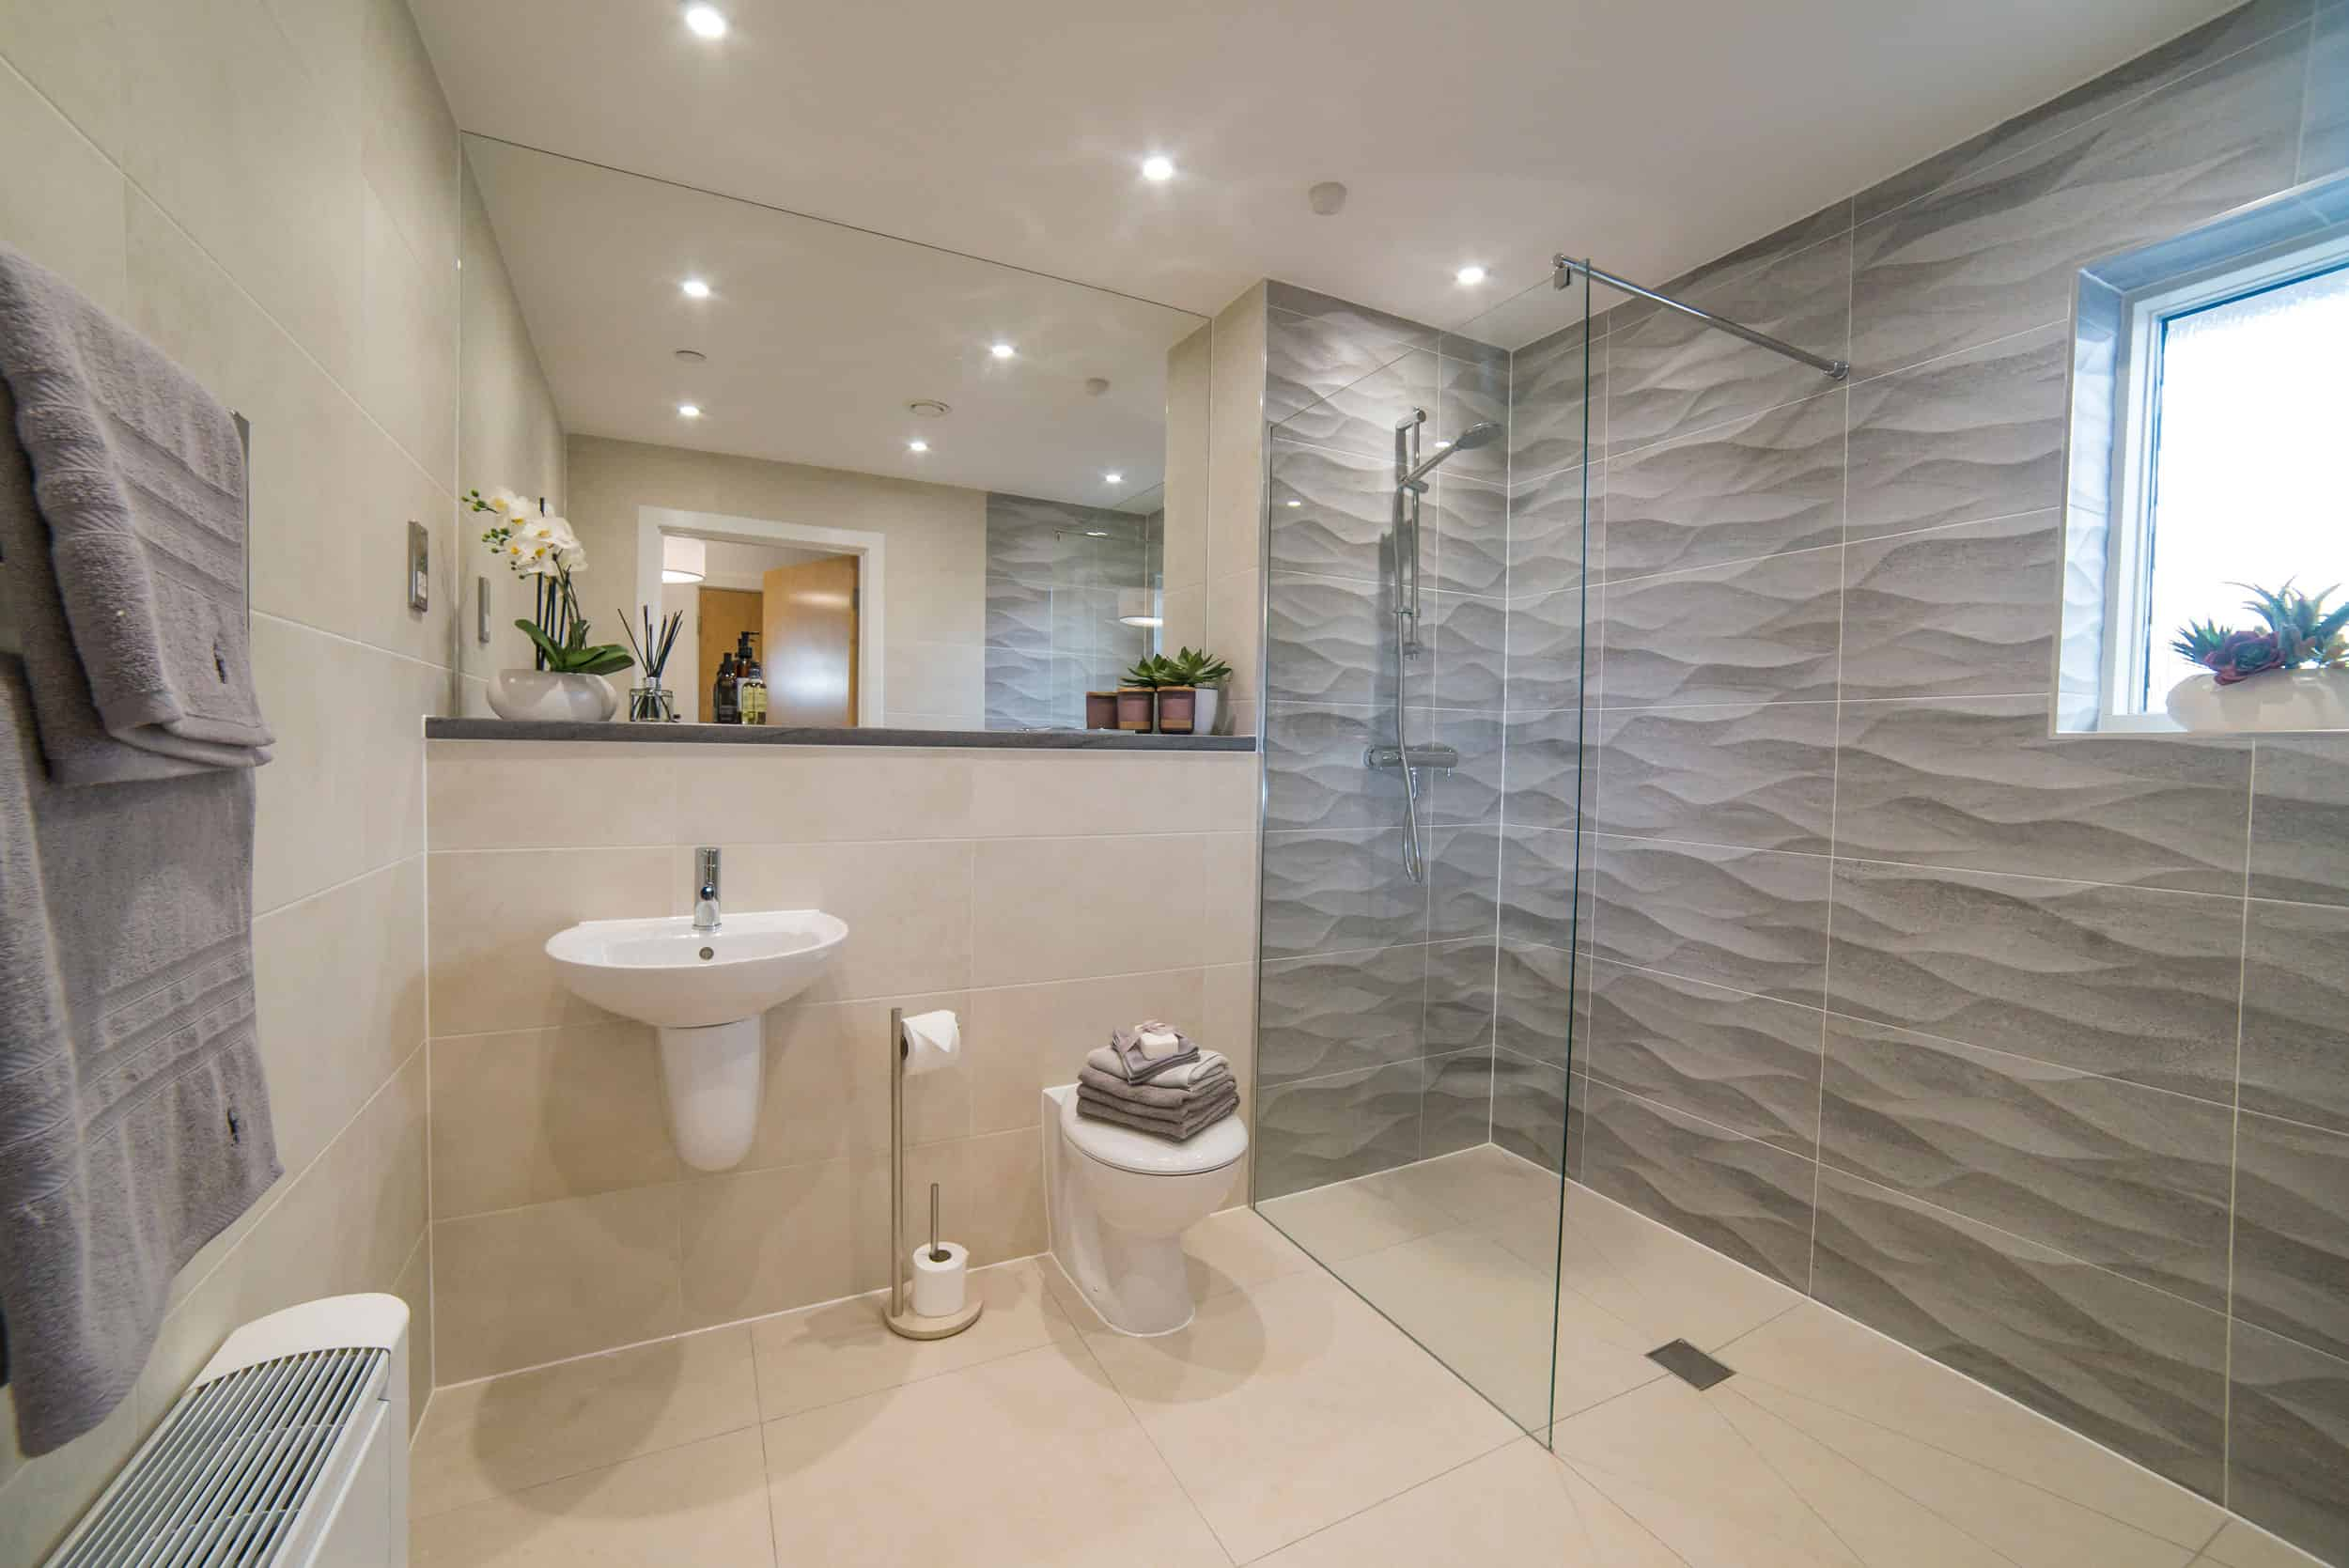 Eywood house bathroom interior